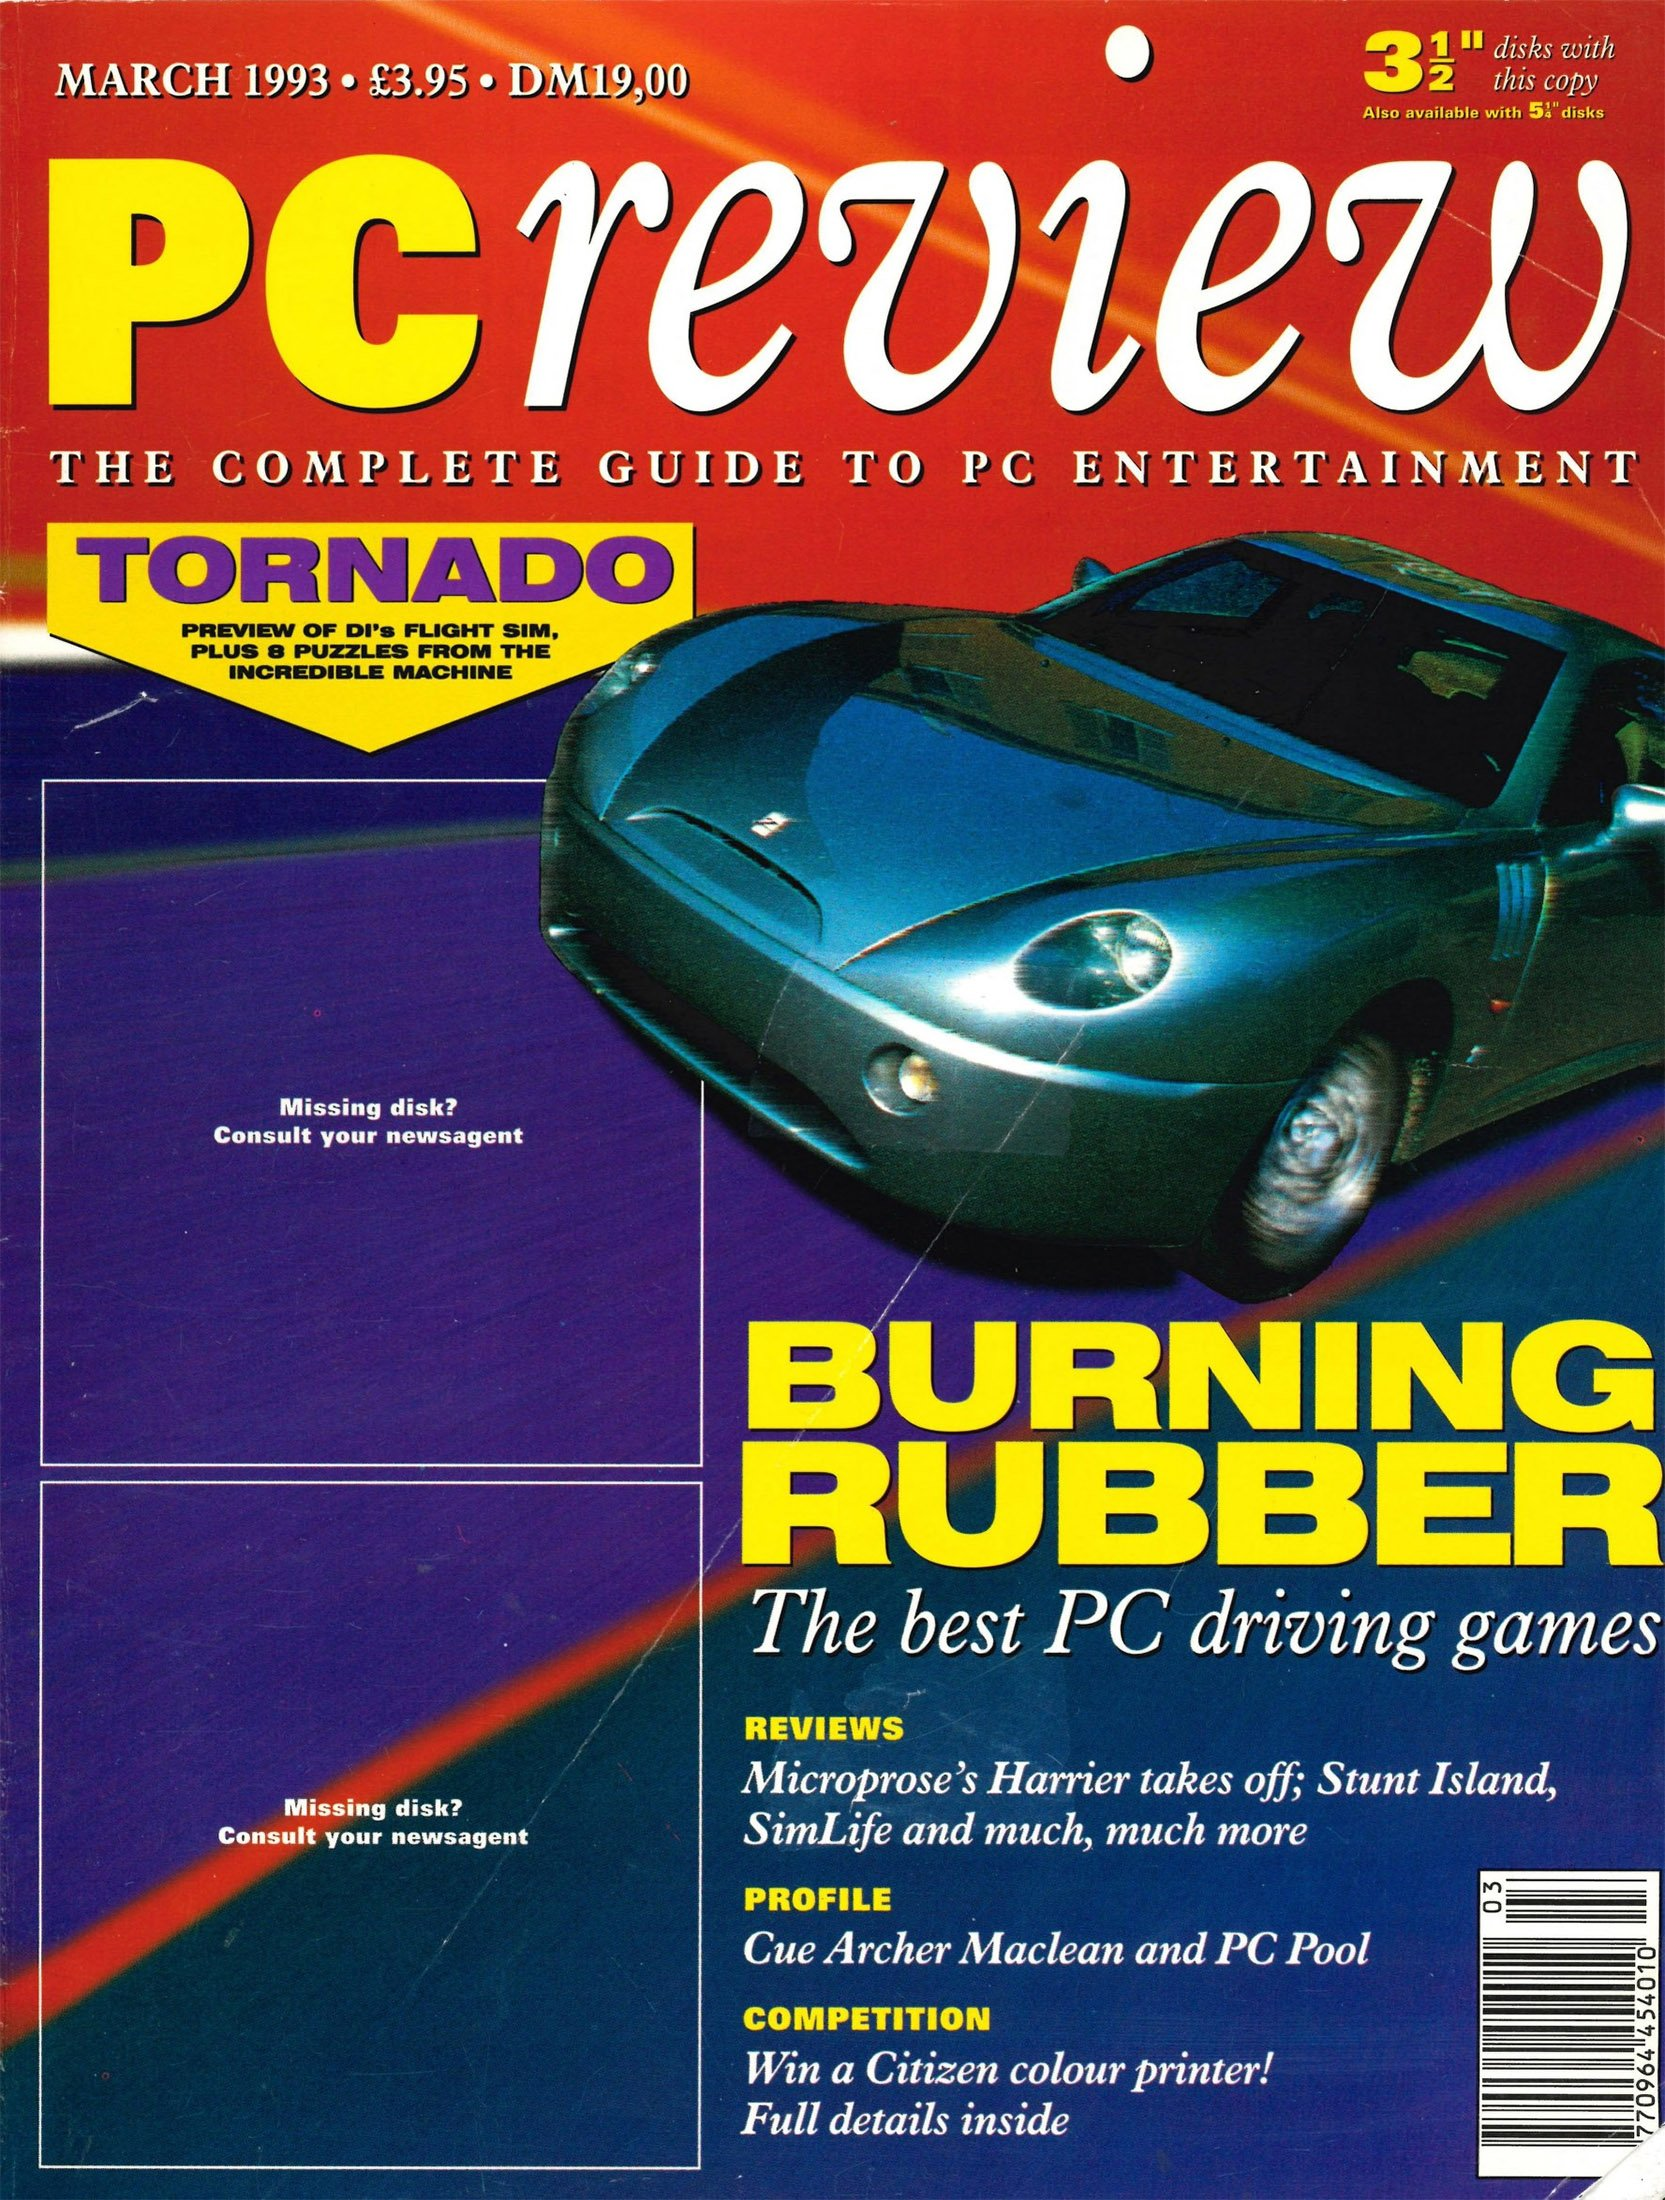 PC Review Issue 17 (March 1993)